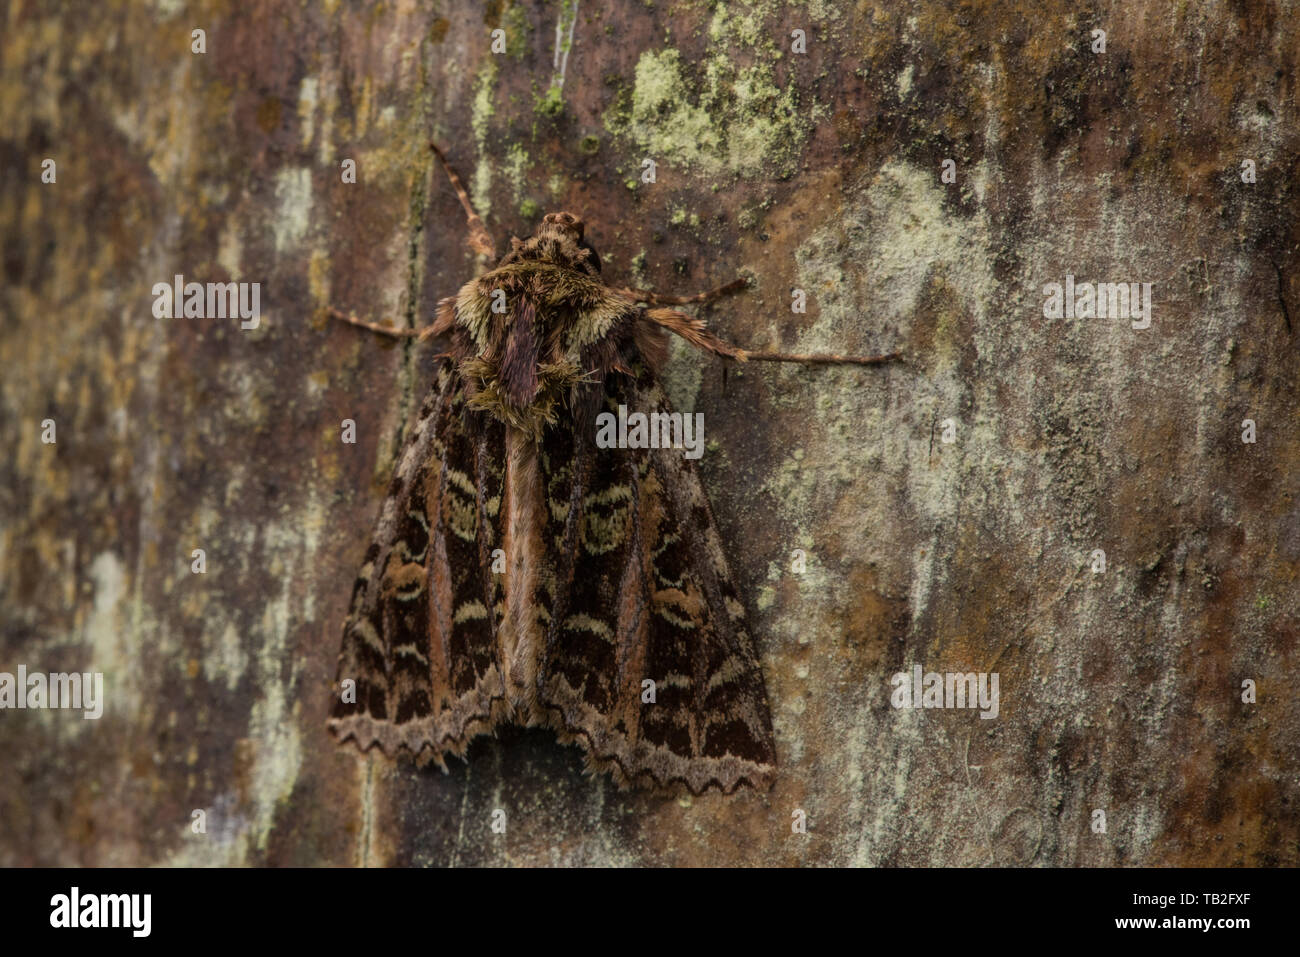 A moth in the Cutworm and Dart Moth Subfamily Noctuinae camouflaged on a wood surface in the Ecuadorian cloud forest. Stock Photo